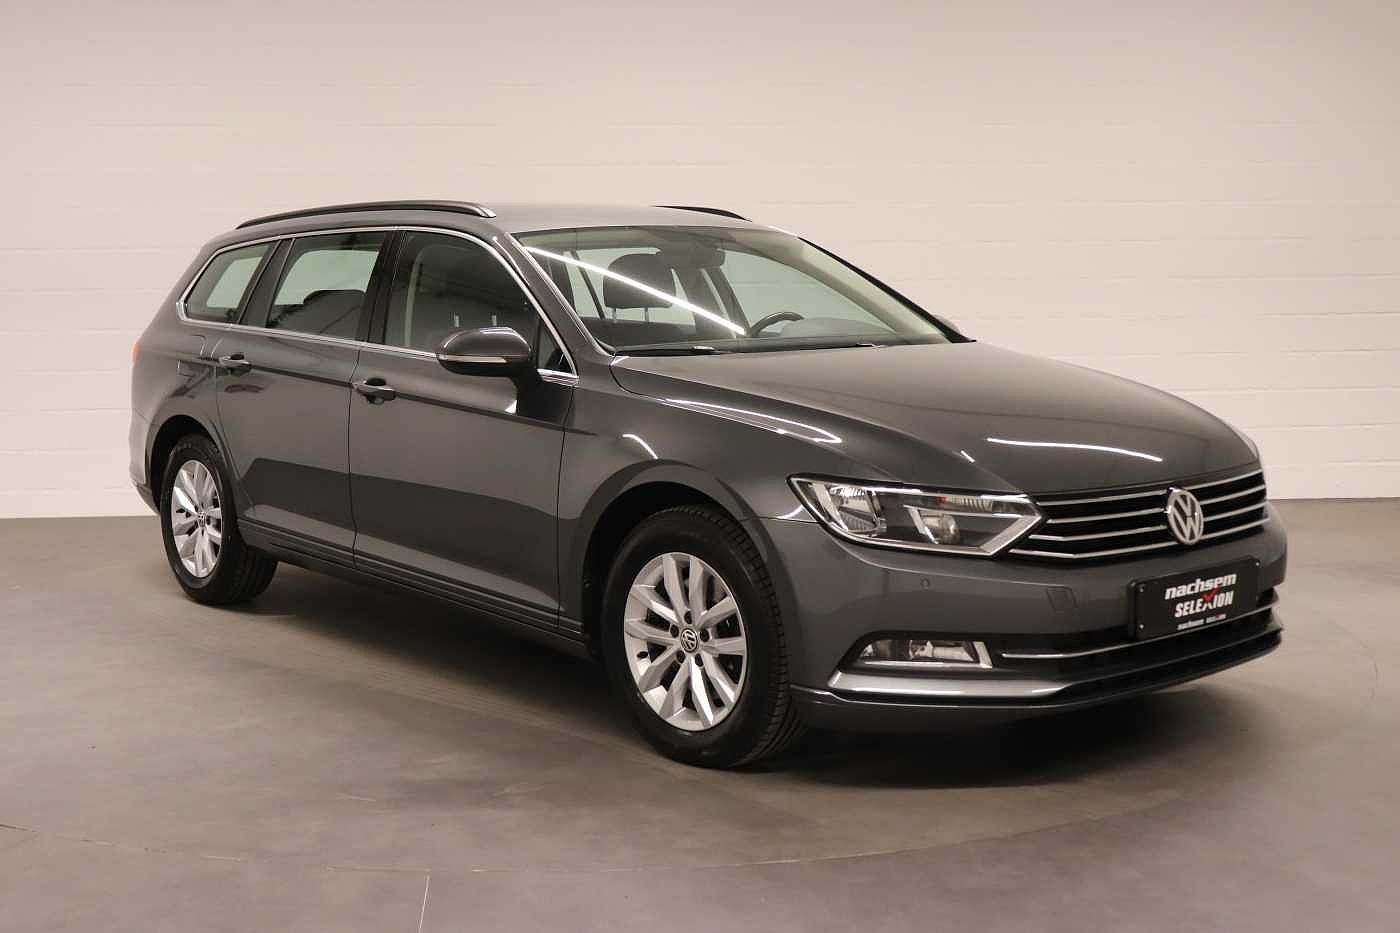 Volkswagen Passat 1.6Tdi - photo 6